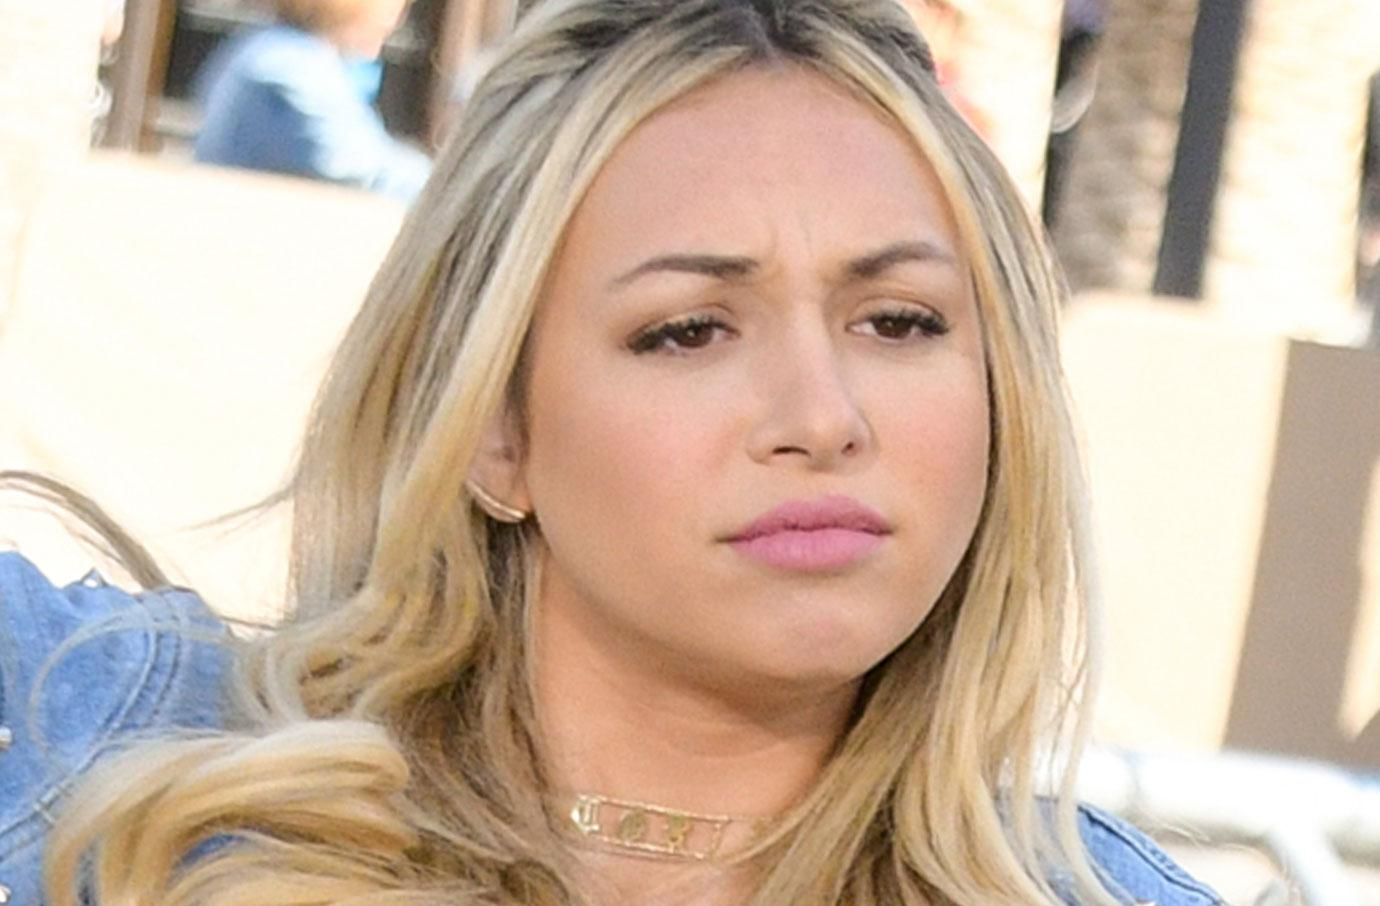 corinne olympios seeking justice demario jackson sexual assault incident bachelor in paradise